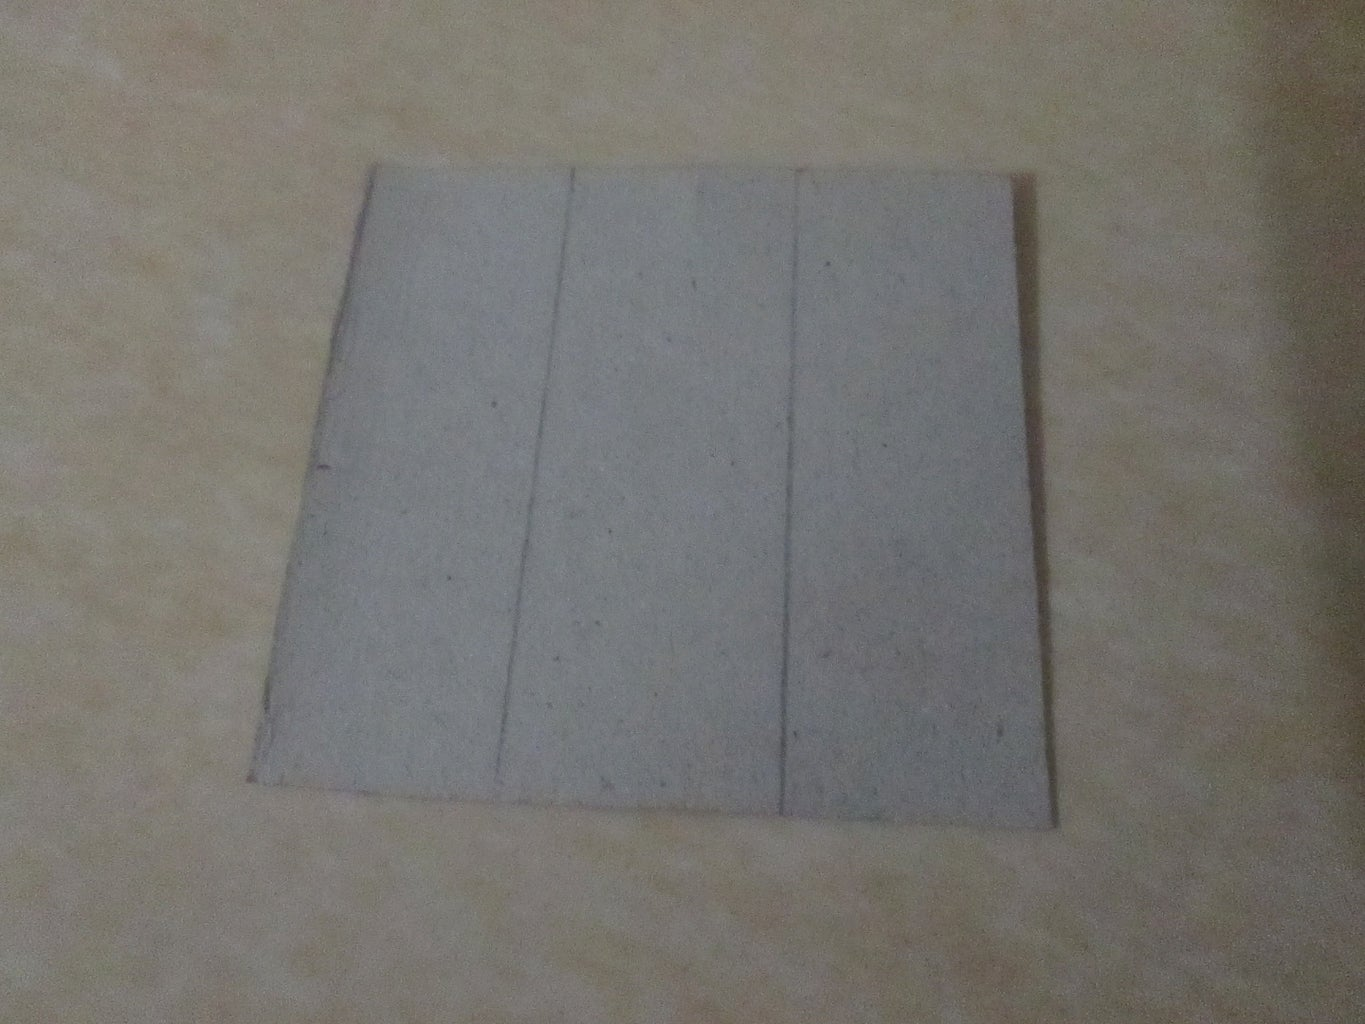 Make Small Square From Cardboard